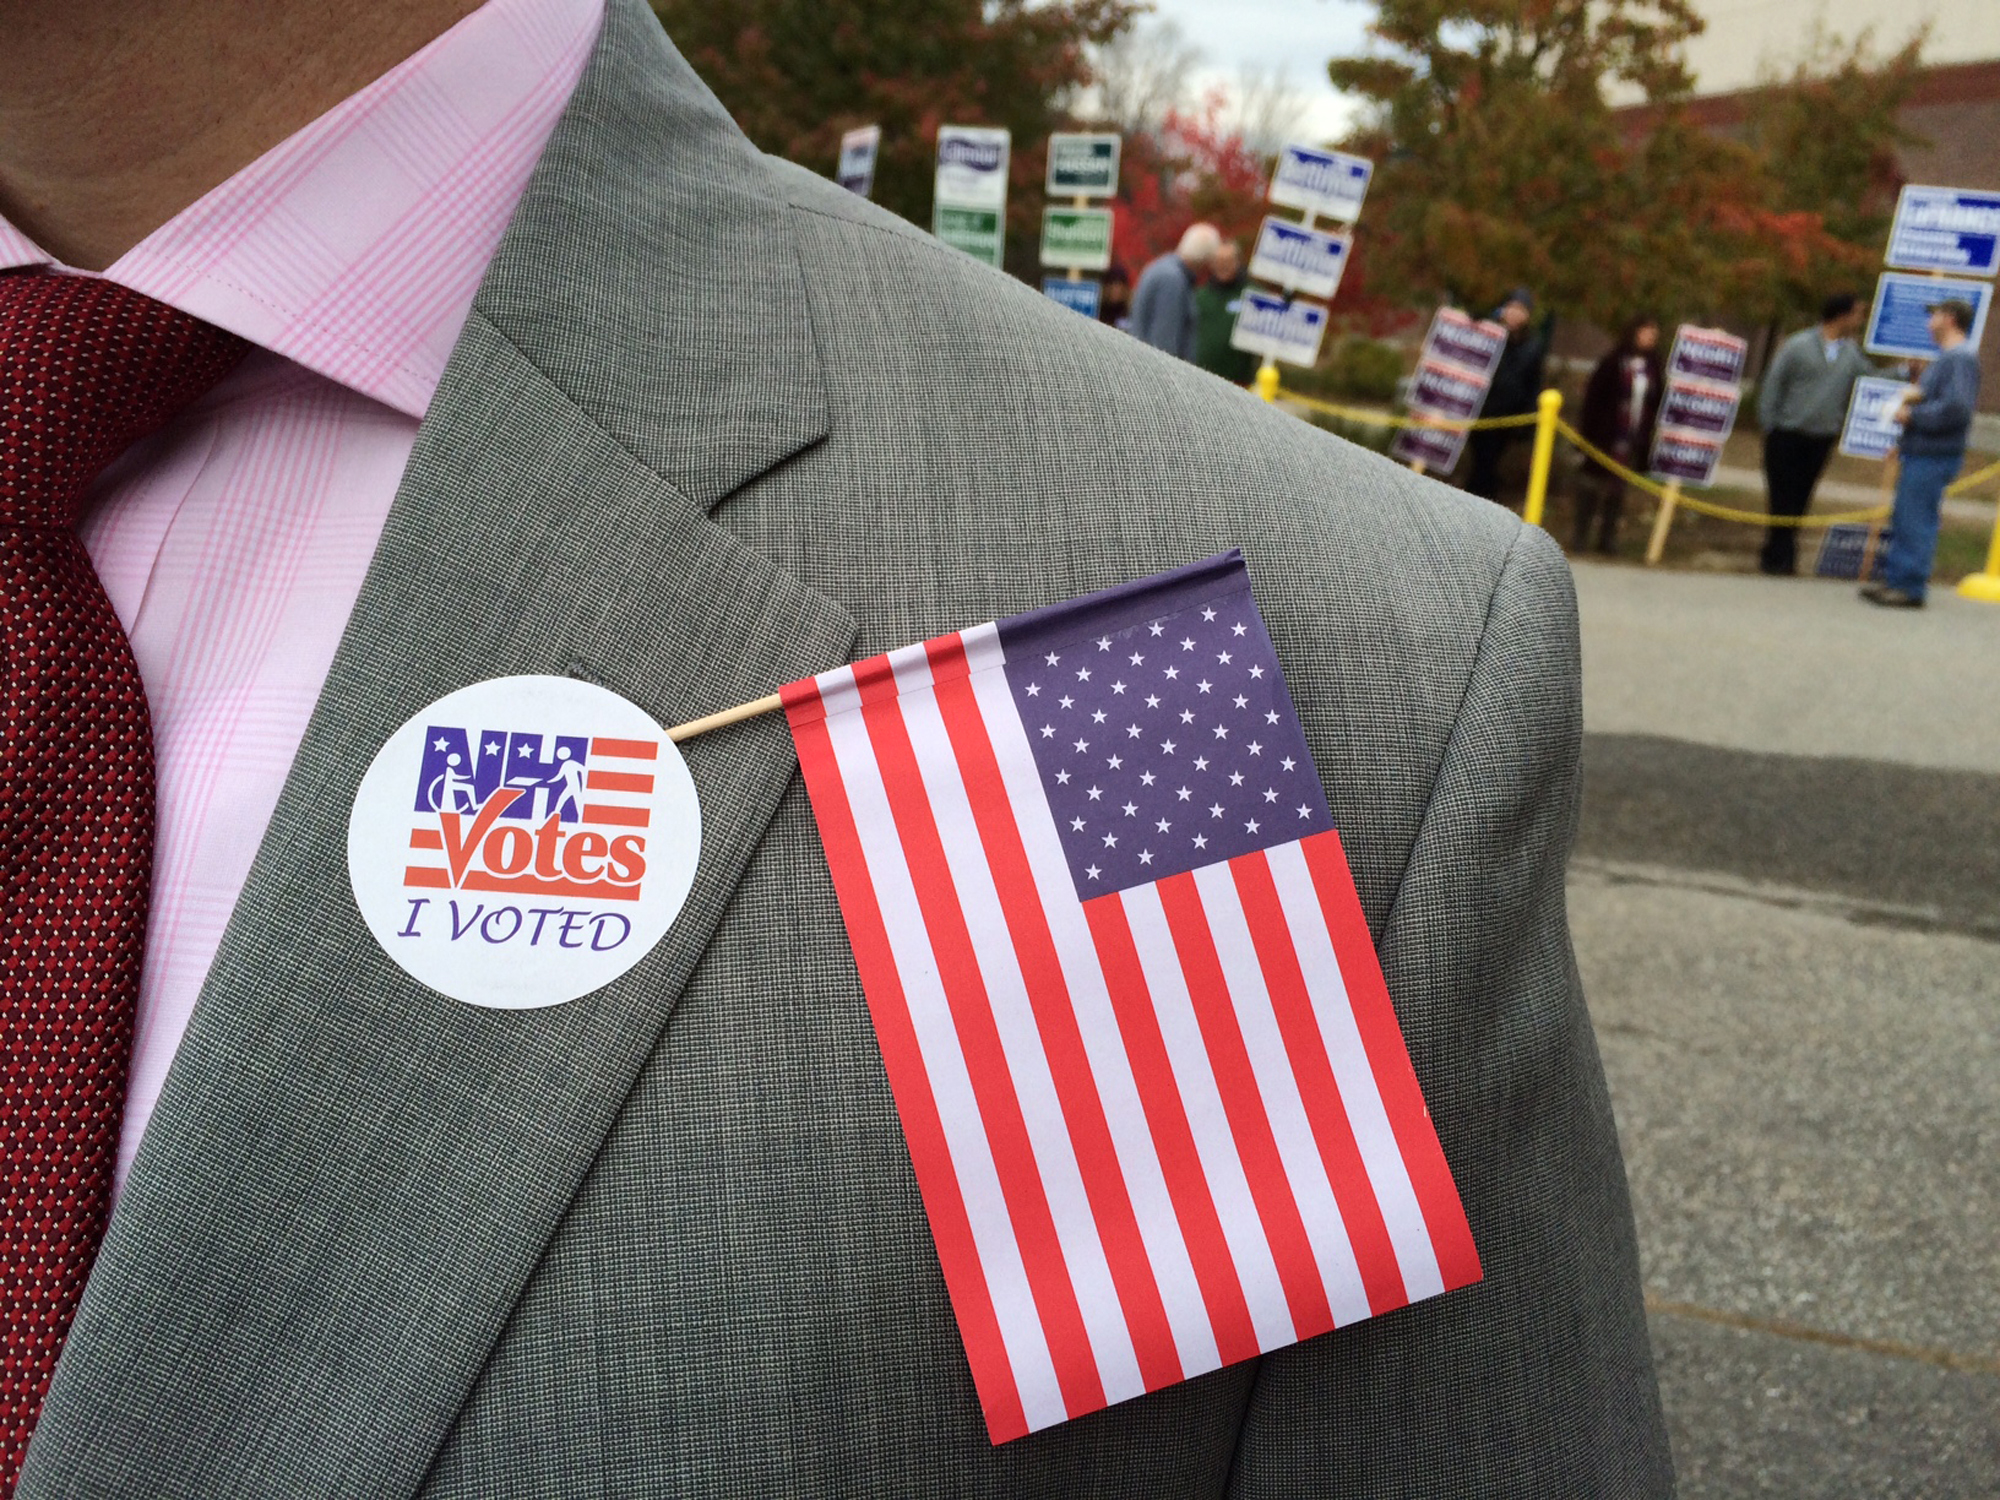 Election day, 2014